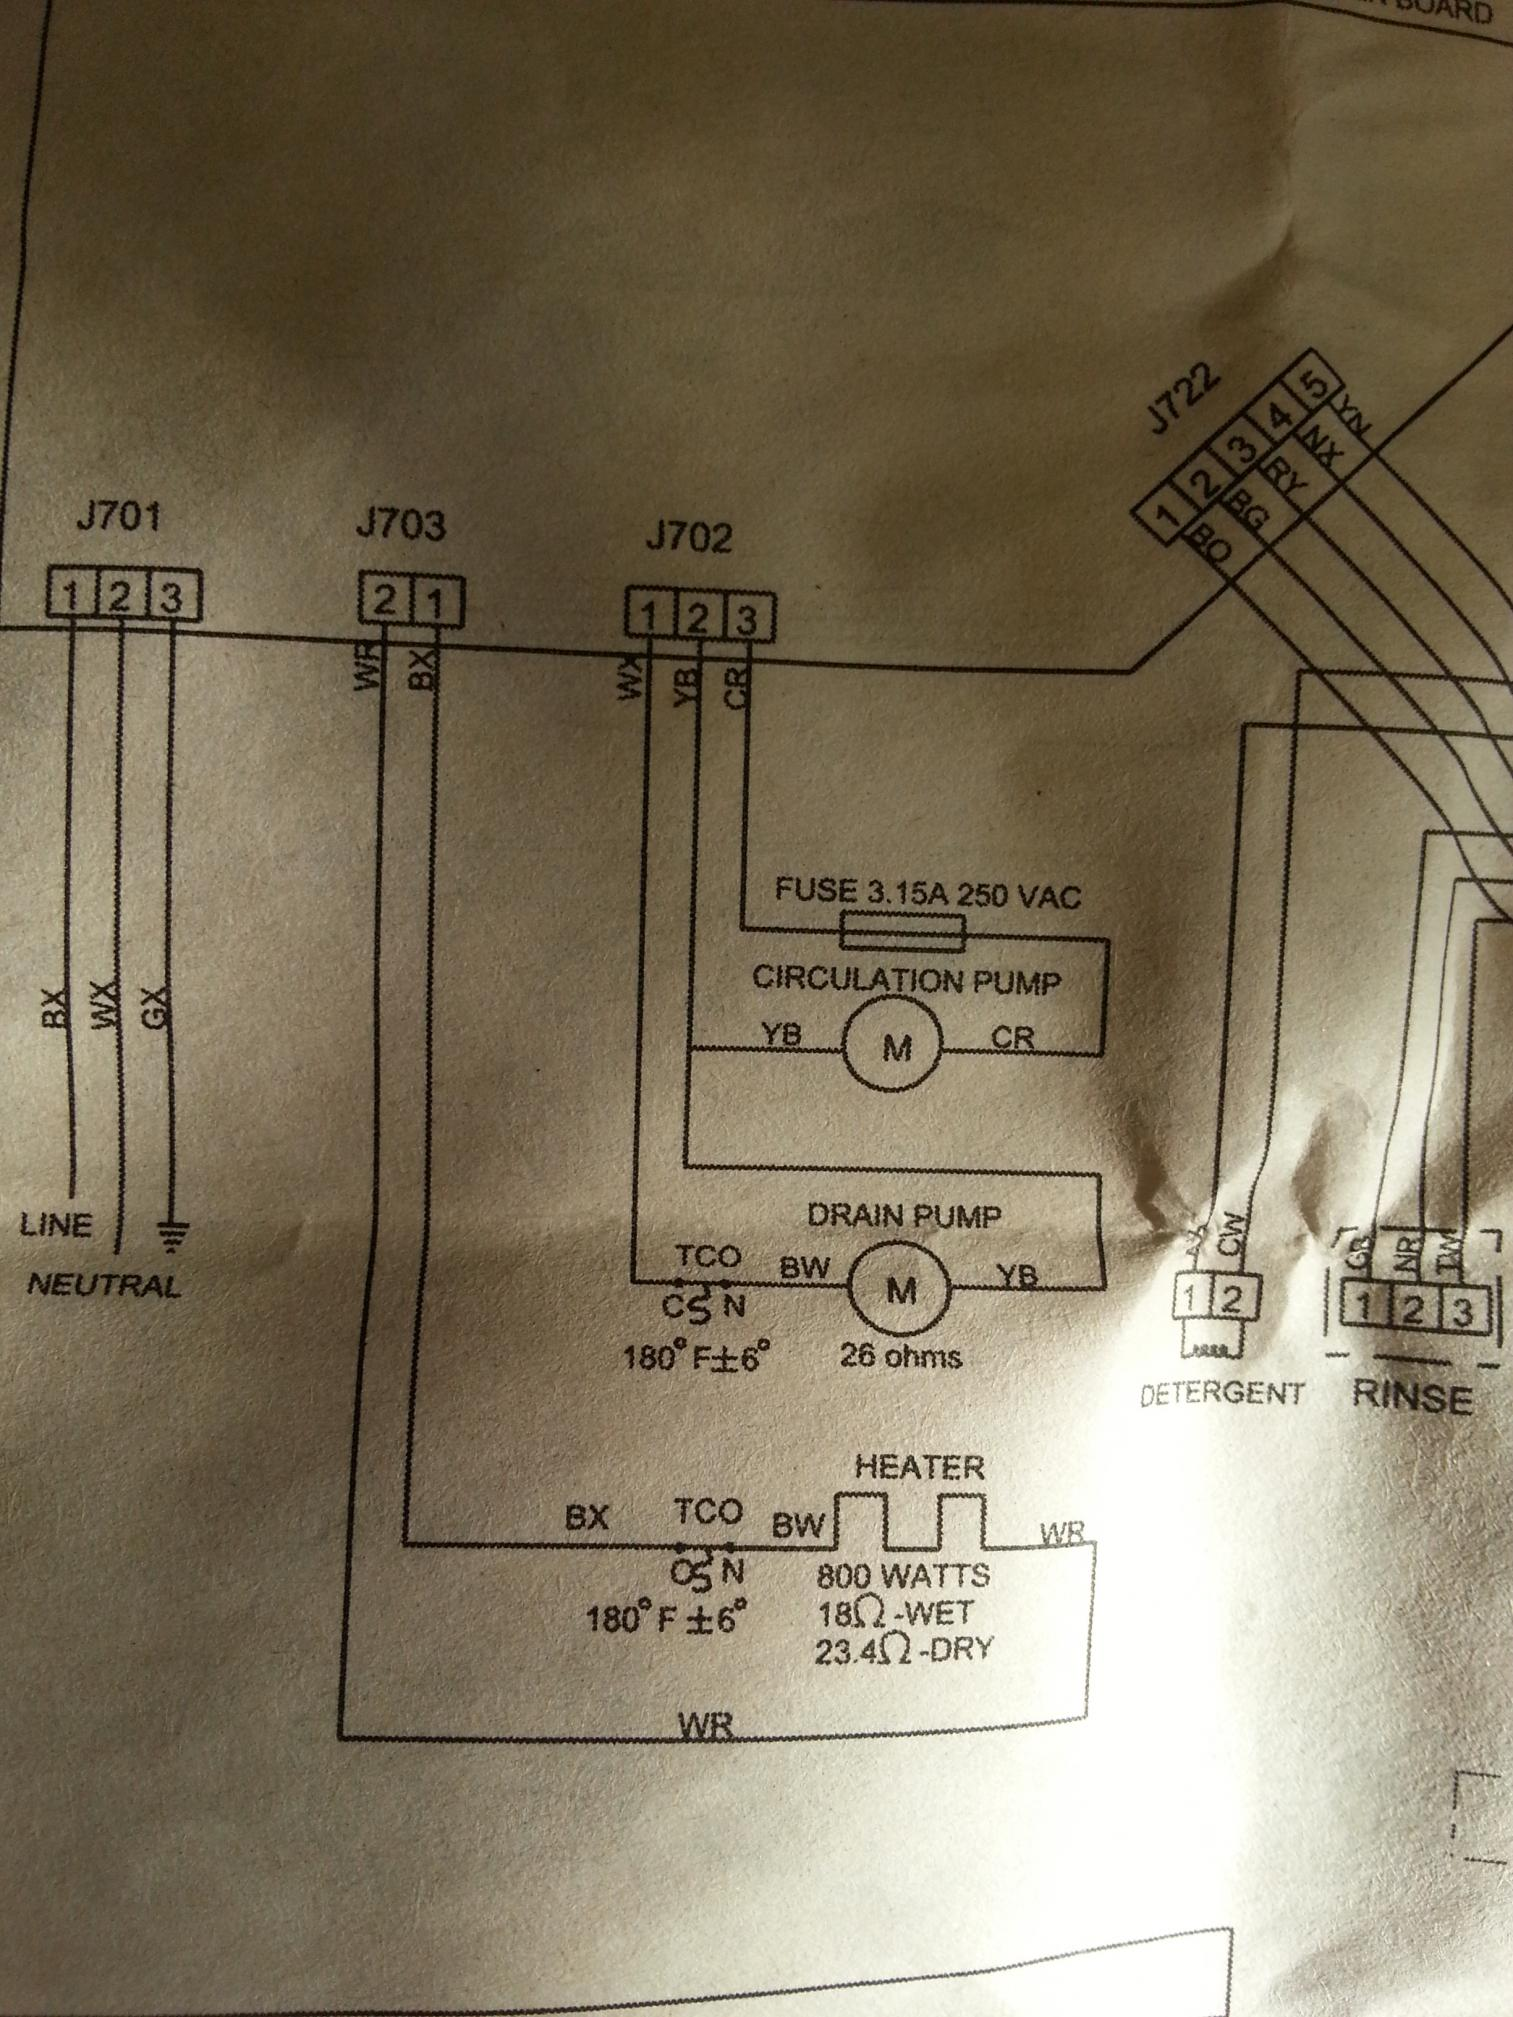 Fixed Gdt580sgf0ww Ge Dishwasher Not Heating Tried Several Things Kenmore Wiring Diagram Click Image For Larger Version Name 20160823 173850 Views 154 Size